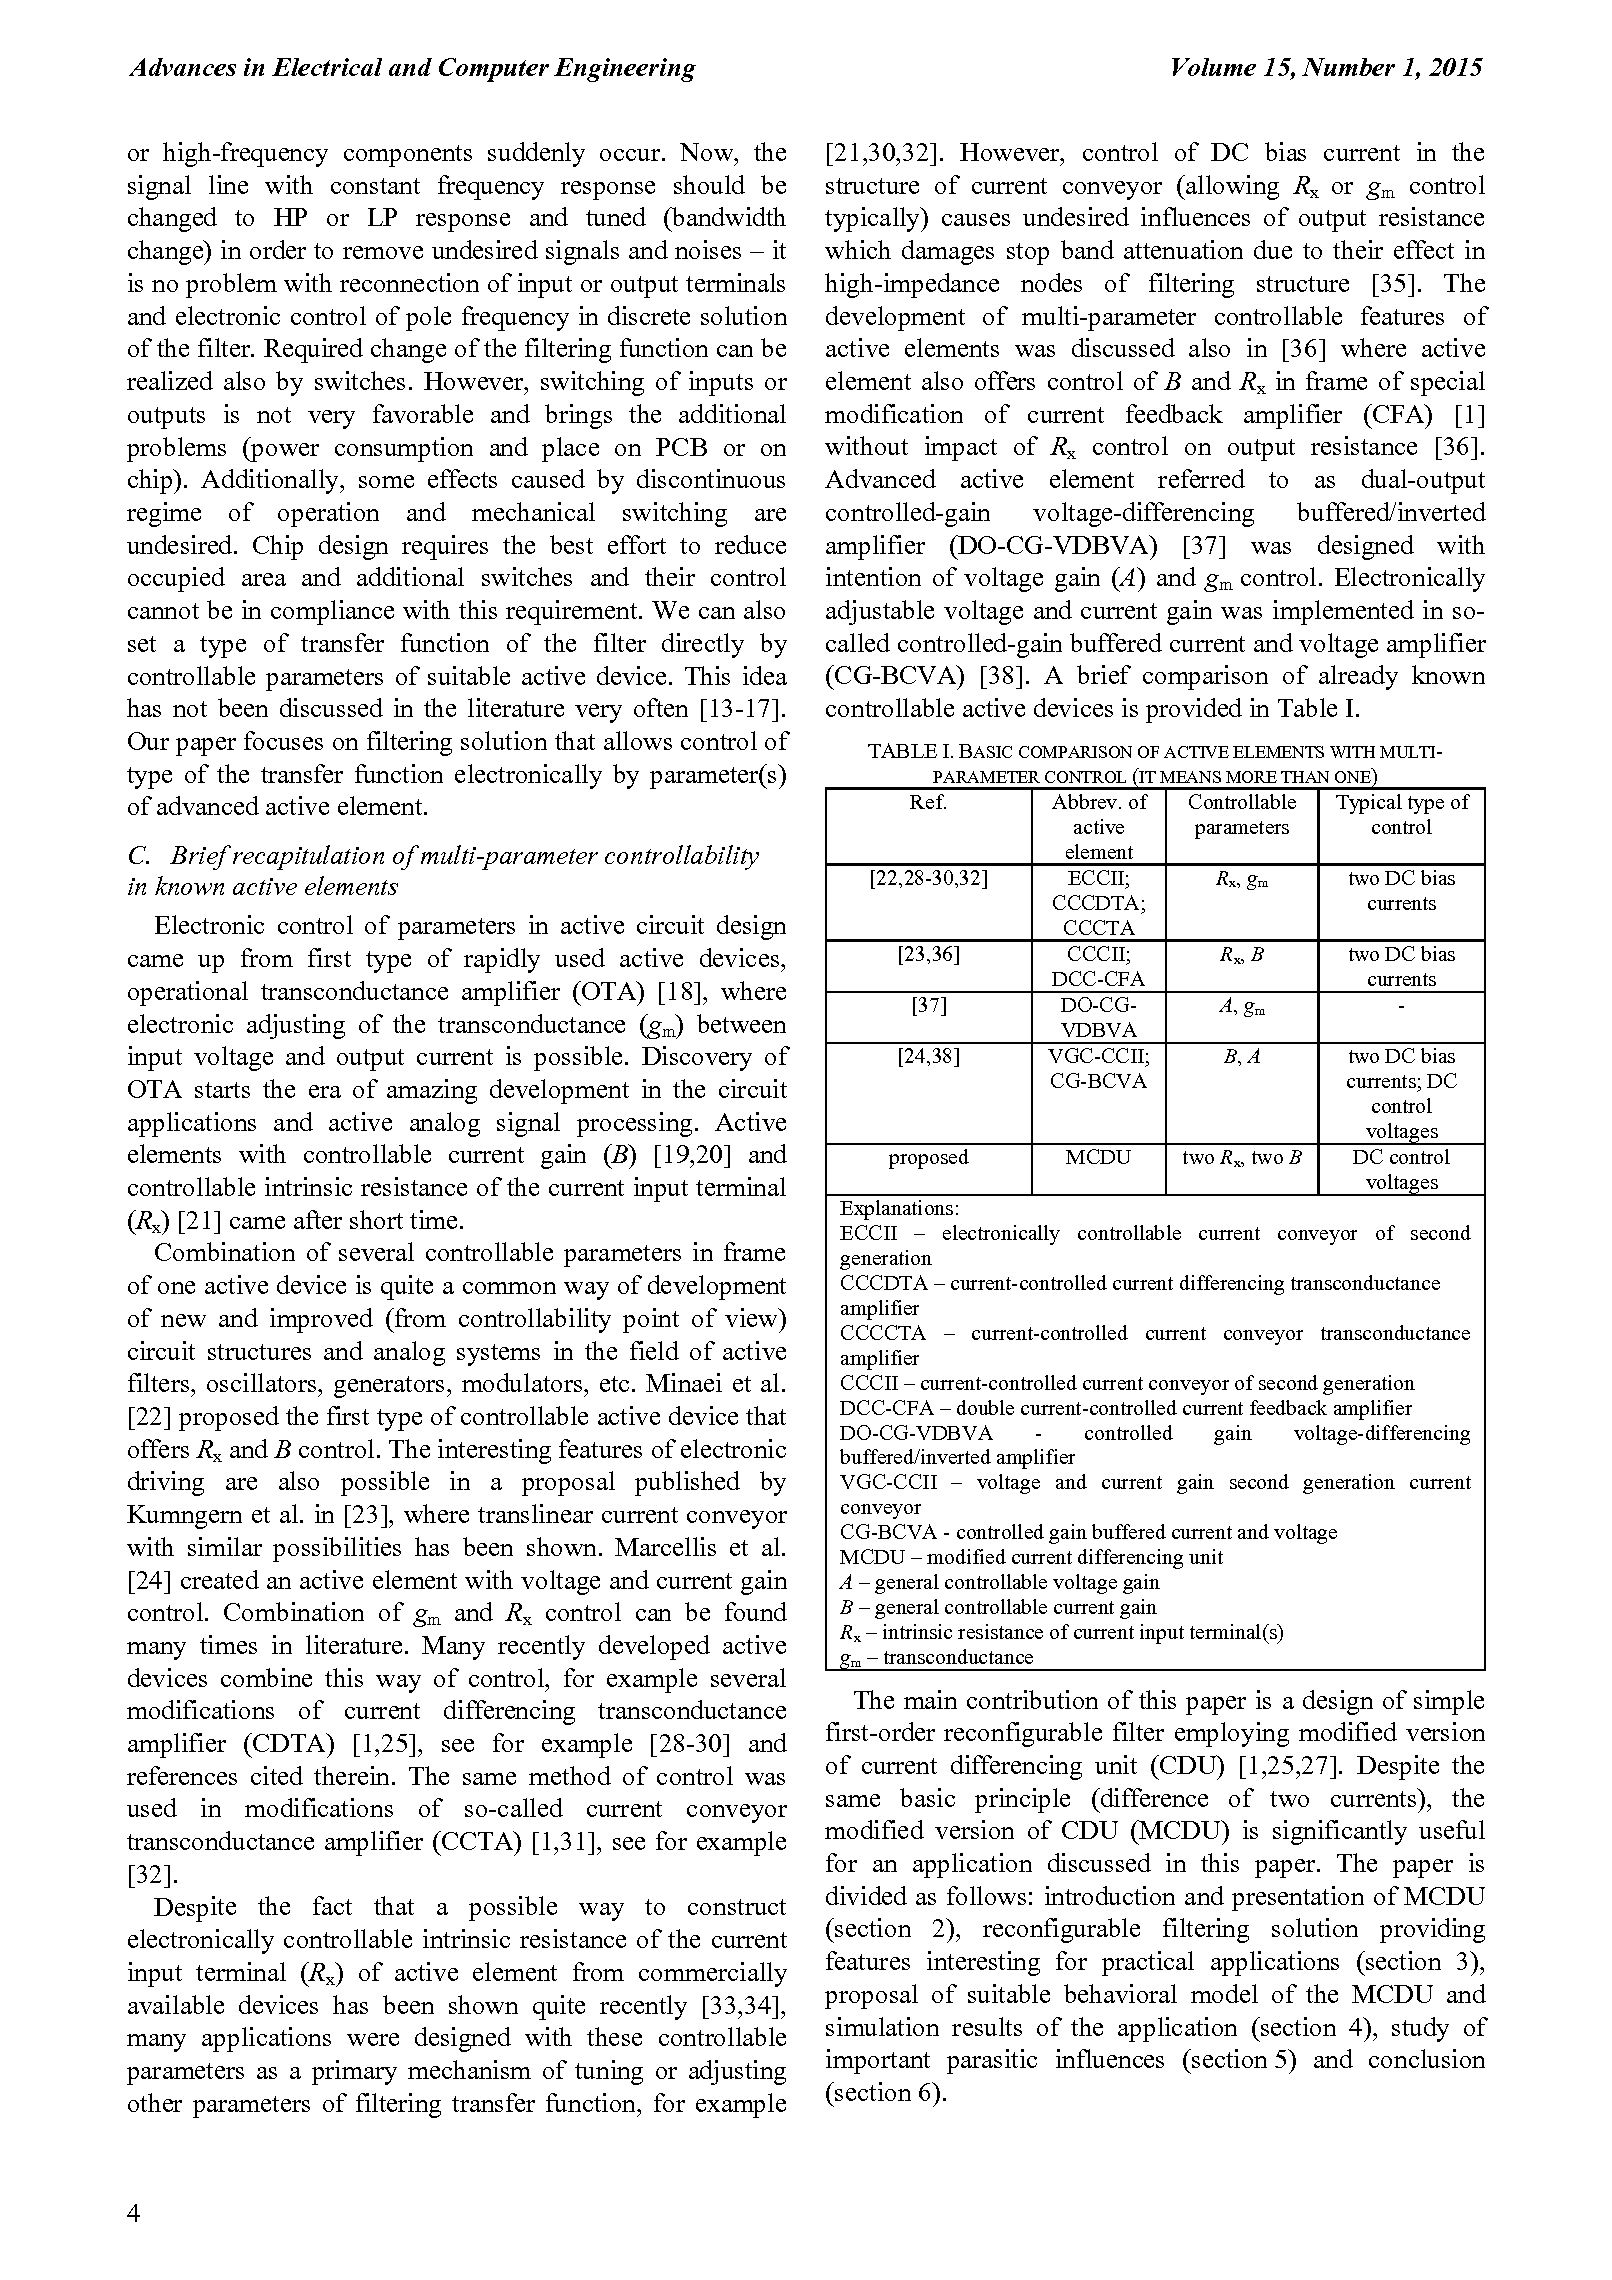 PDF Quickview for paper with DOI:10.4316/AECE.2015.01001